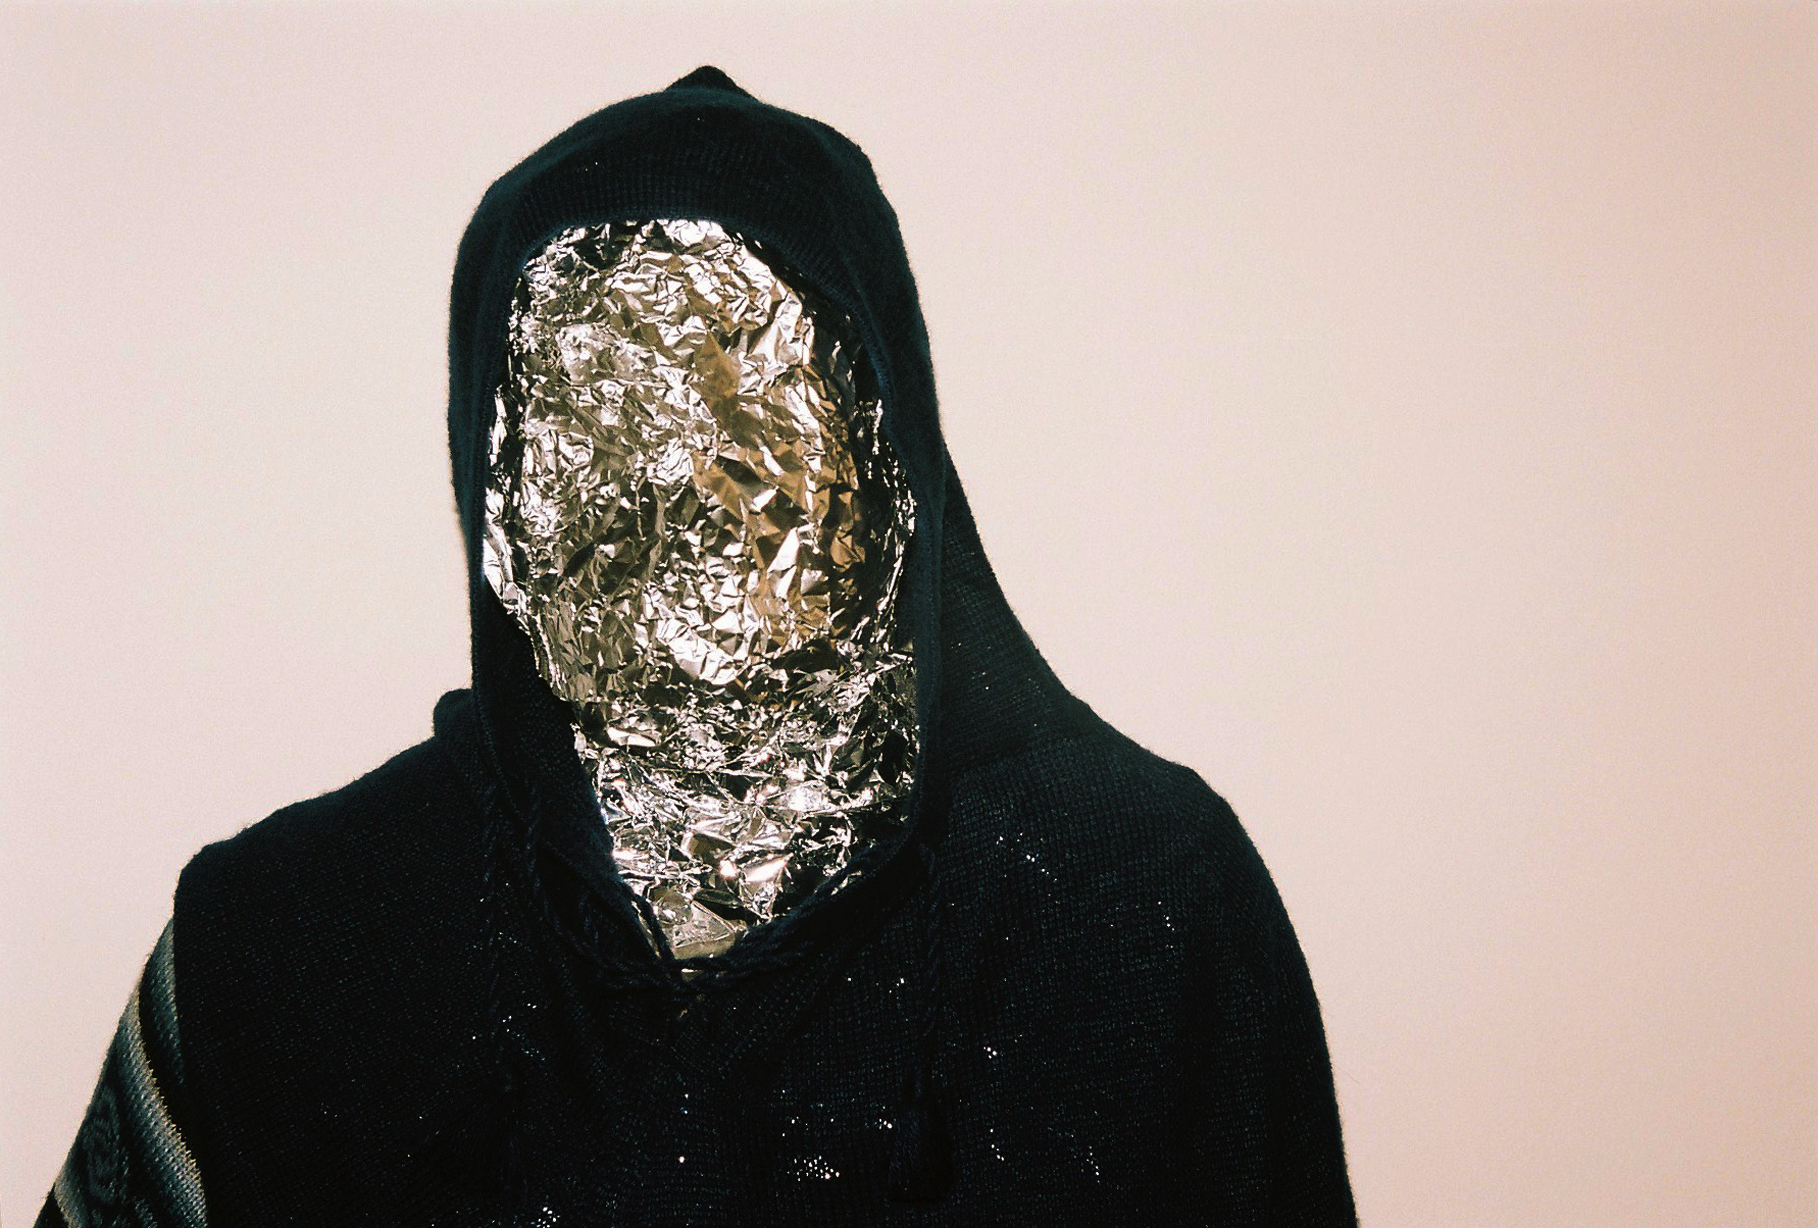 Pictured: John Talabot. A DJ. WHO MAKES MONEY